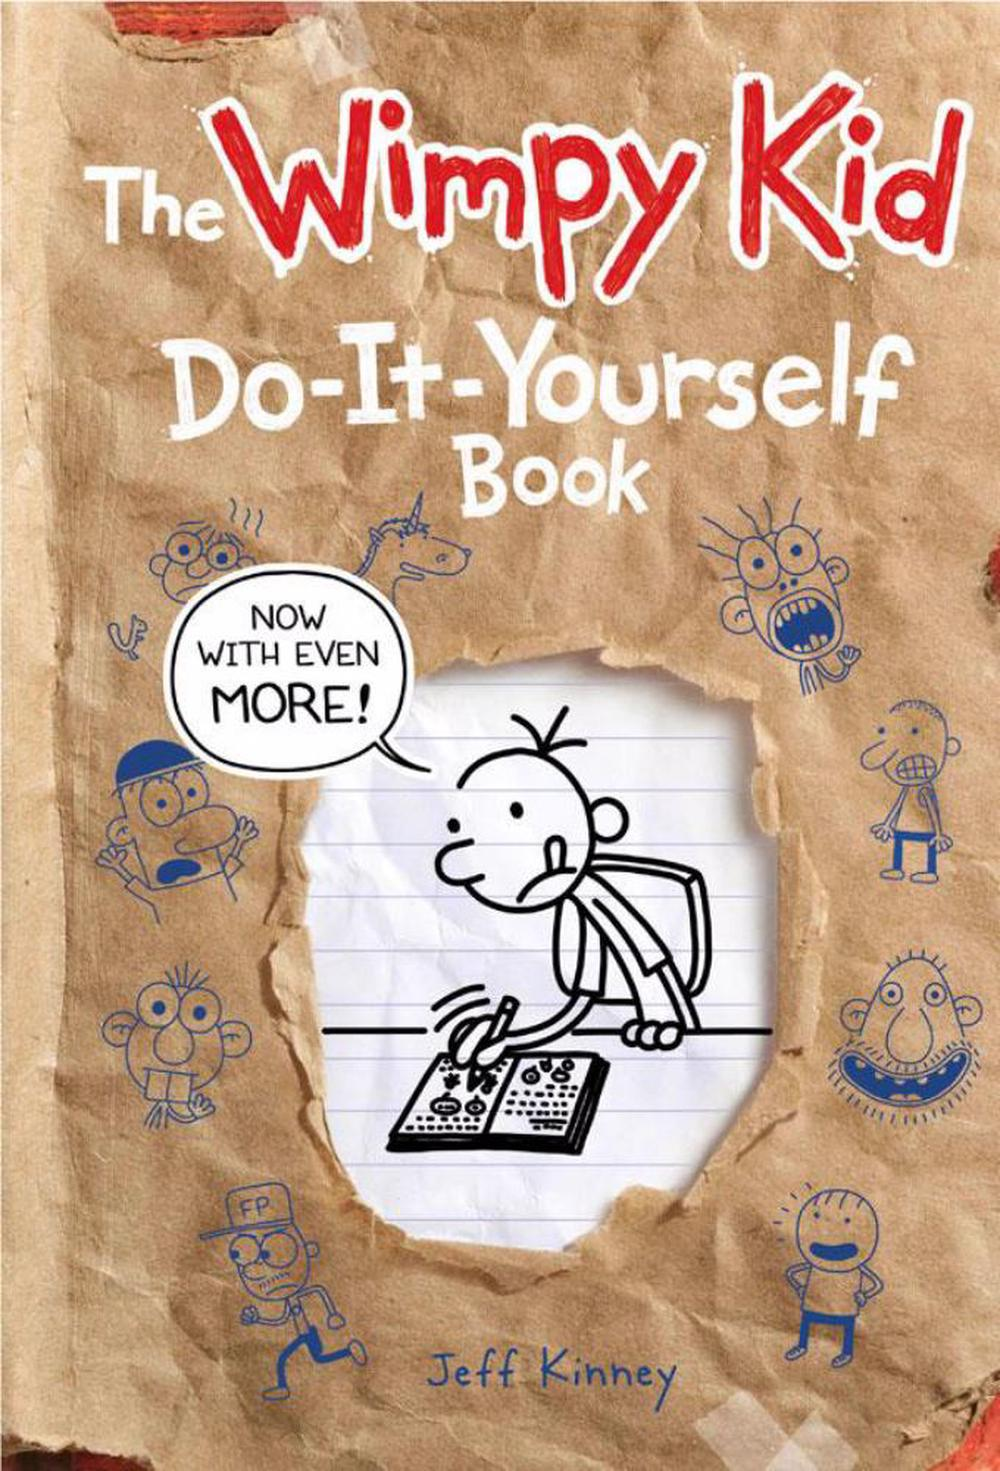 The wimpy kid do it yourself book by jeff kinney hardcover the wimpy kid do it yourself book solutioingenieria Gallery